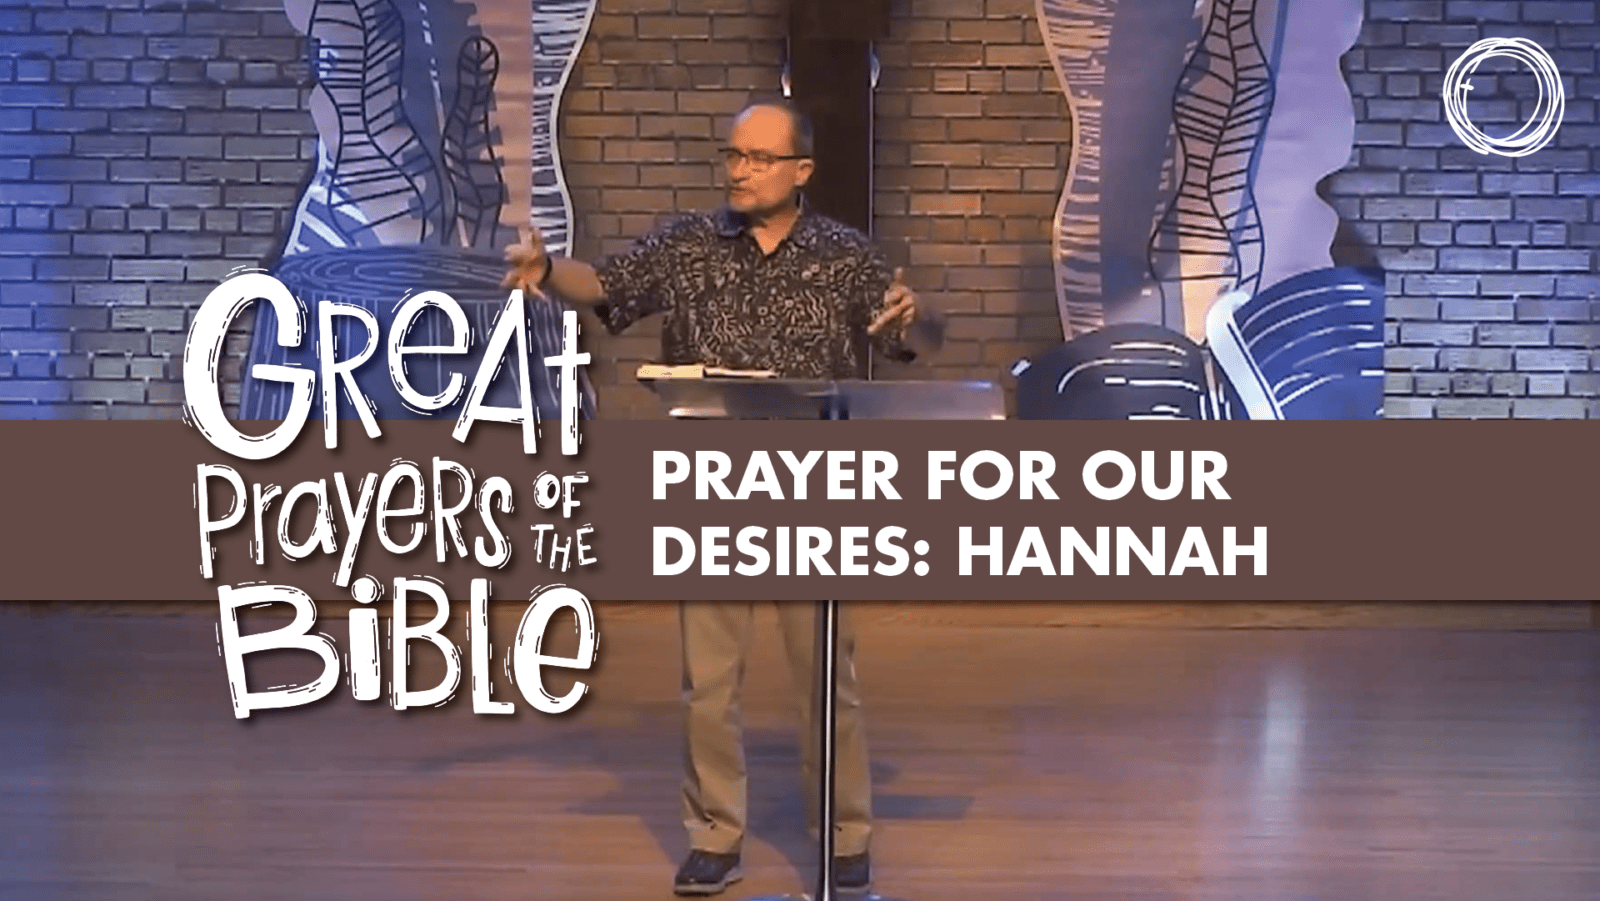 Prayer for Our Desires: Hannah